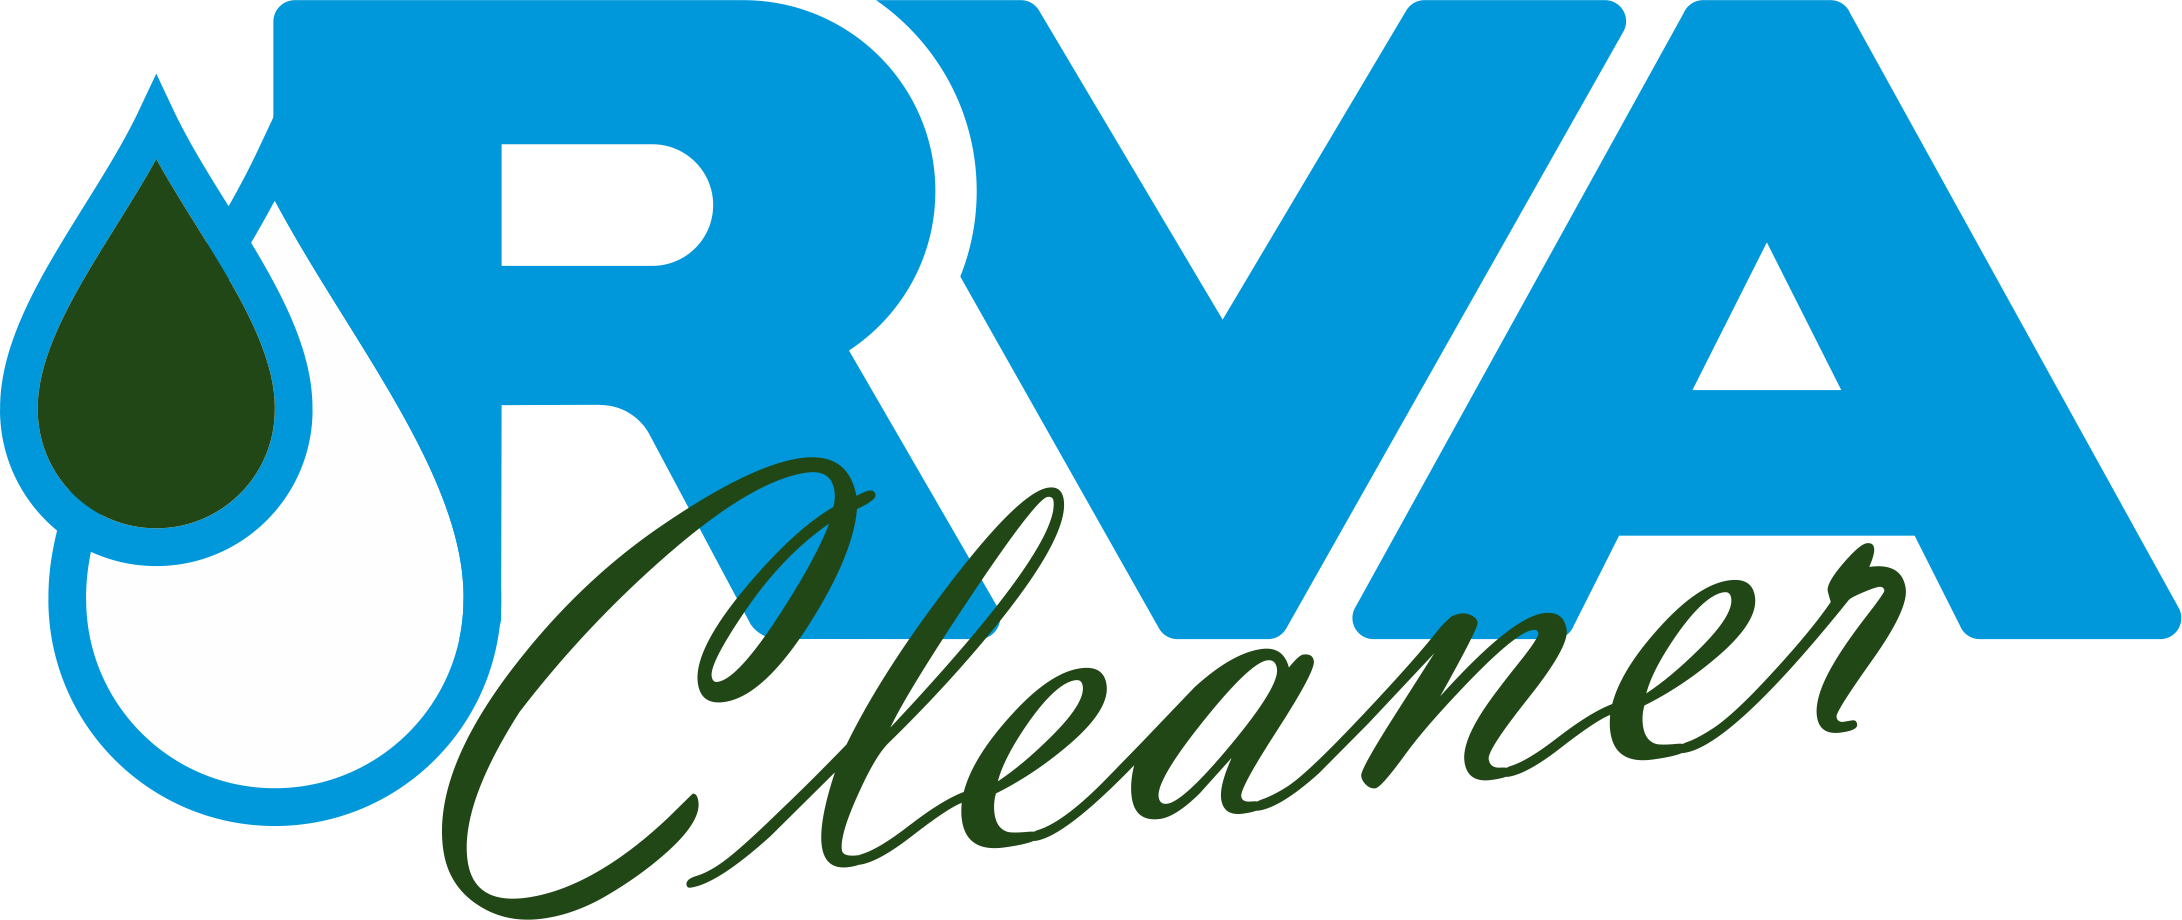 RVA Cleaner Logo